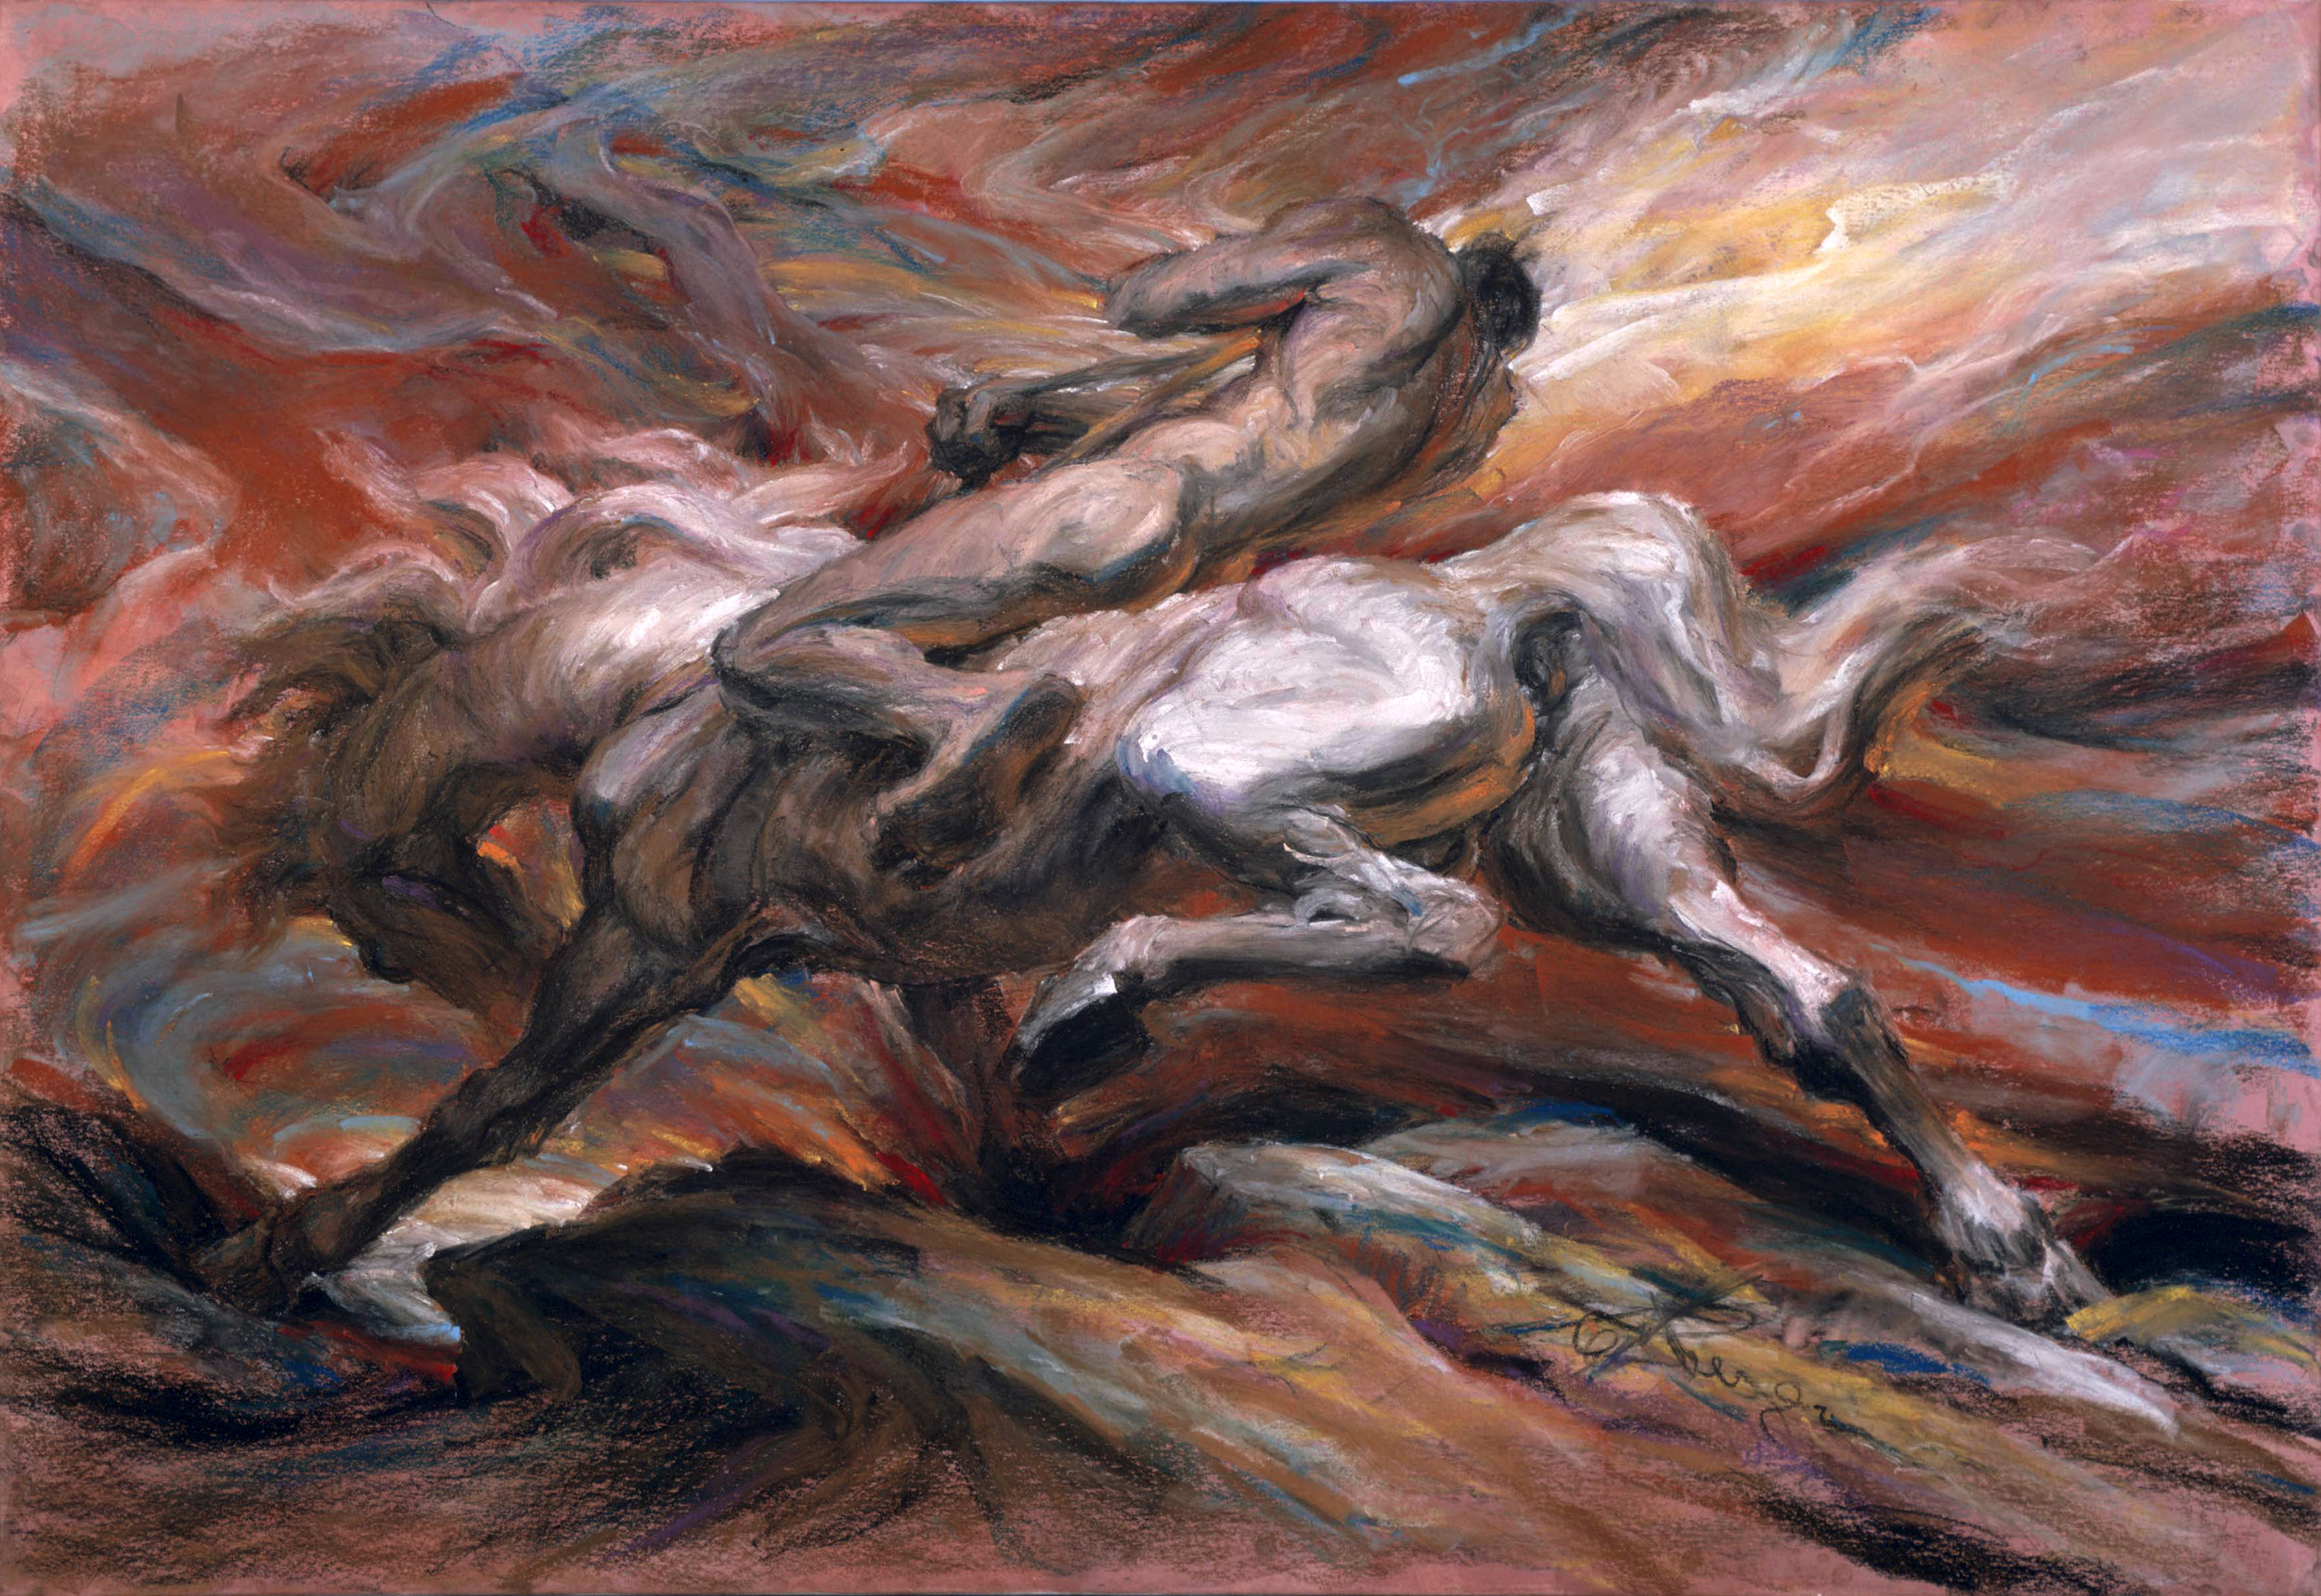 (Pastel, 42 x 64 in.)